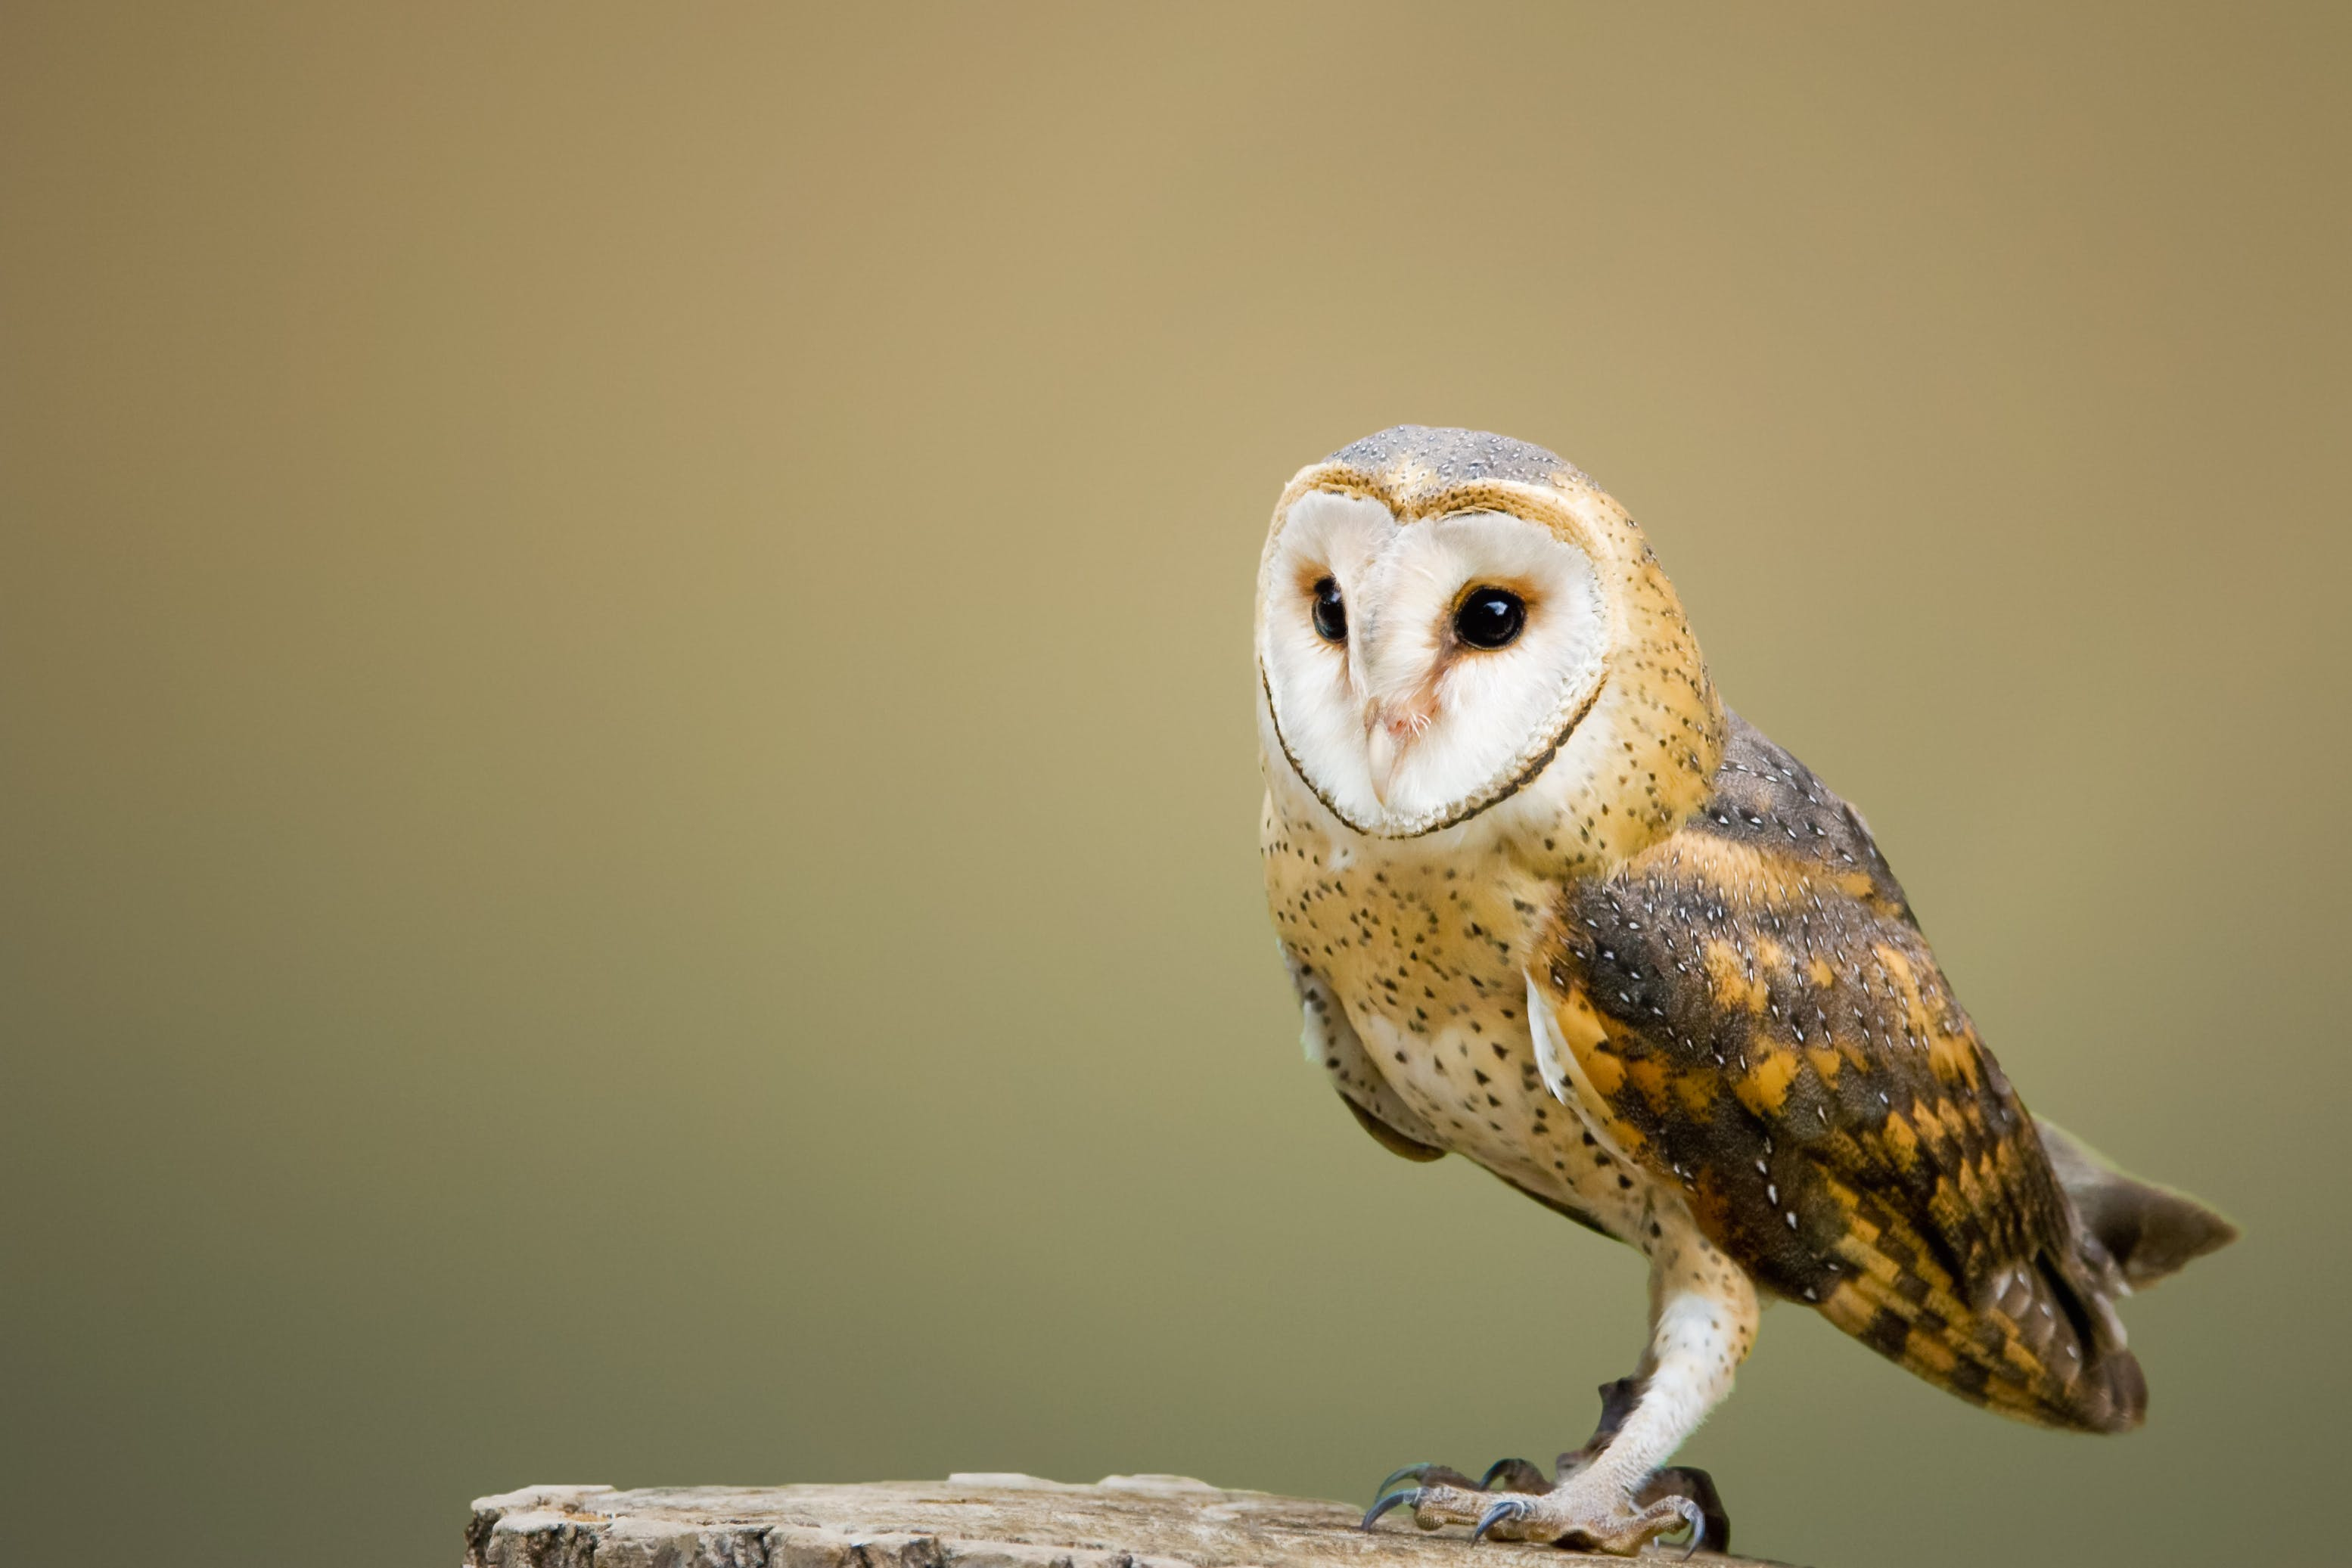 Beige and Brown Owl on Top of Tree Log